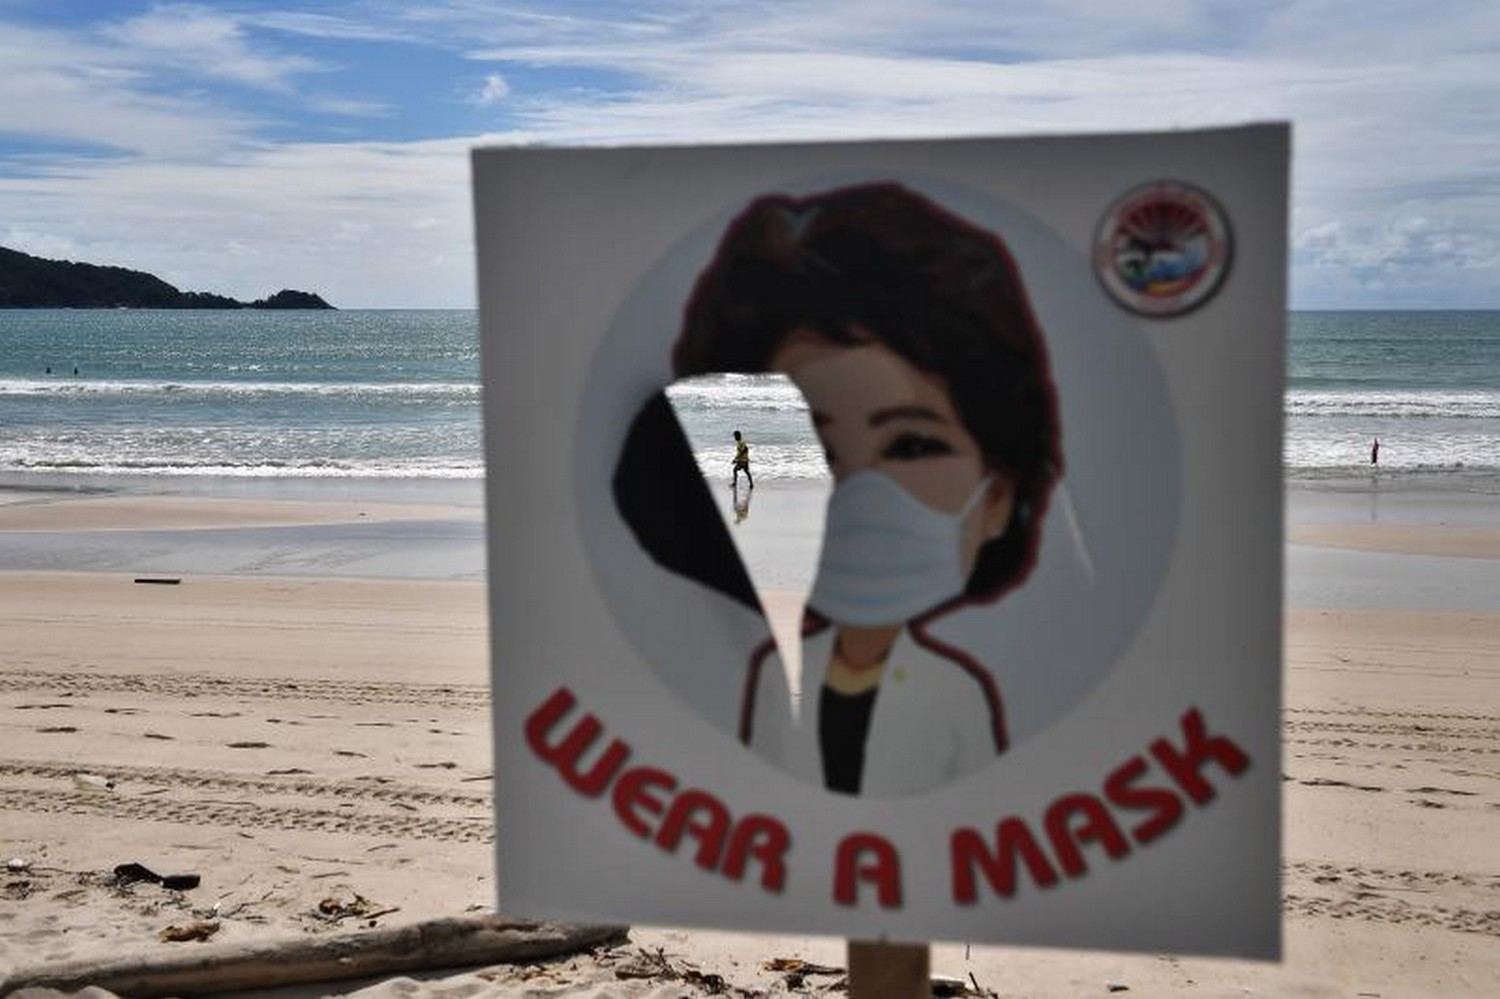 A man walks along the empty beach at Patong, Phuket, seen through a torn sign telling people to wear a mask, on Oct 1. (Photo: Lillian Suwanrumpha/AFP)